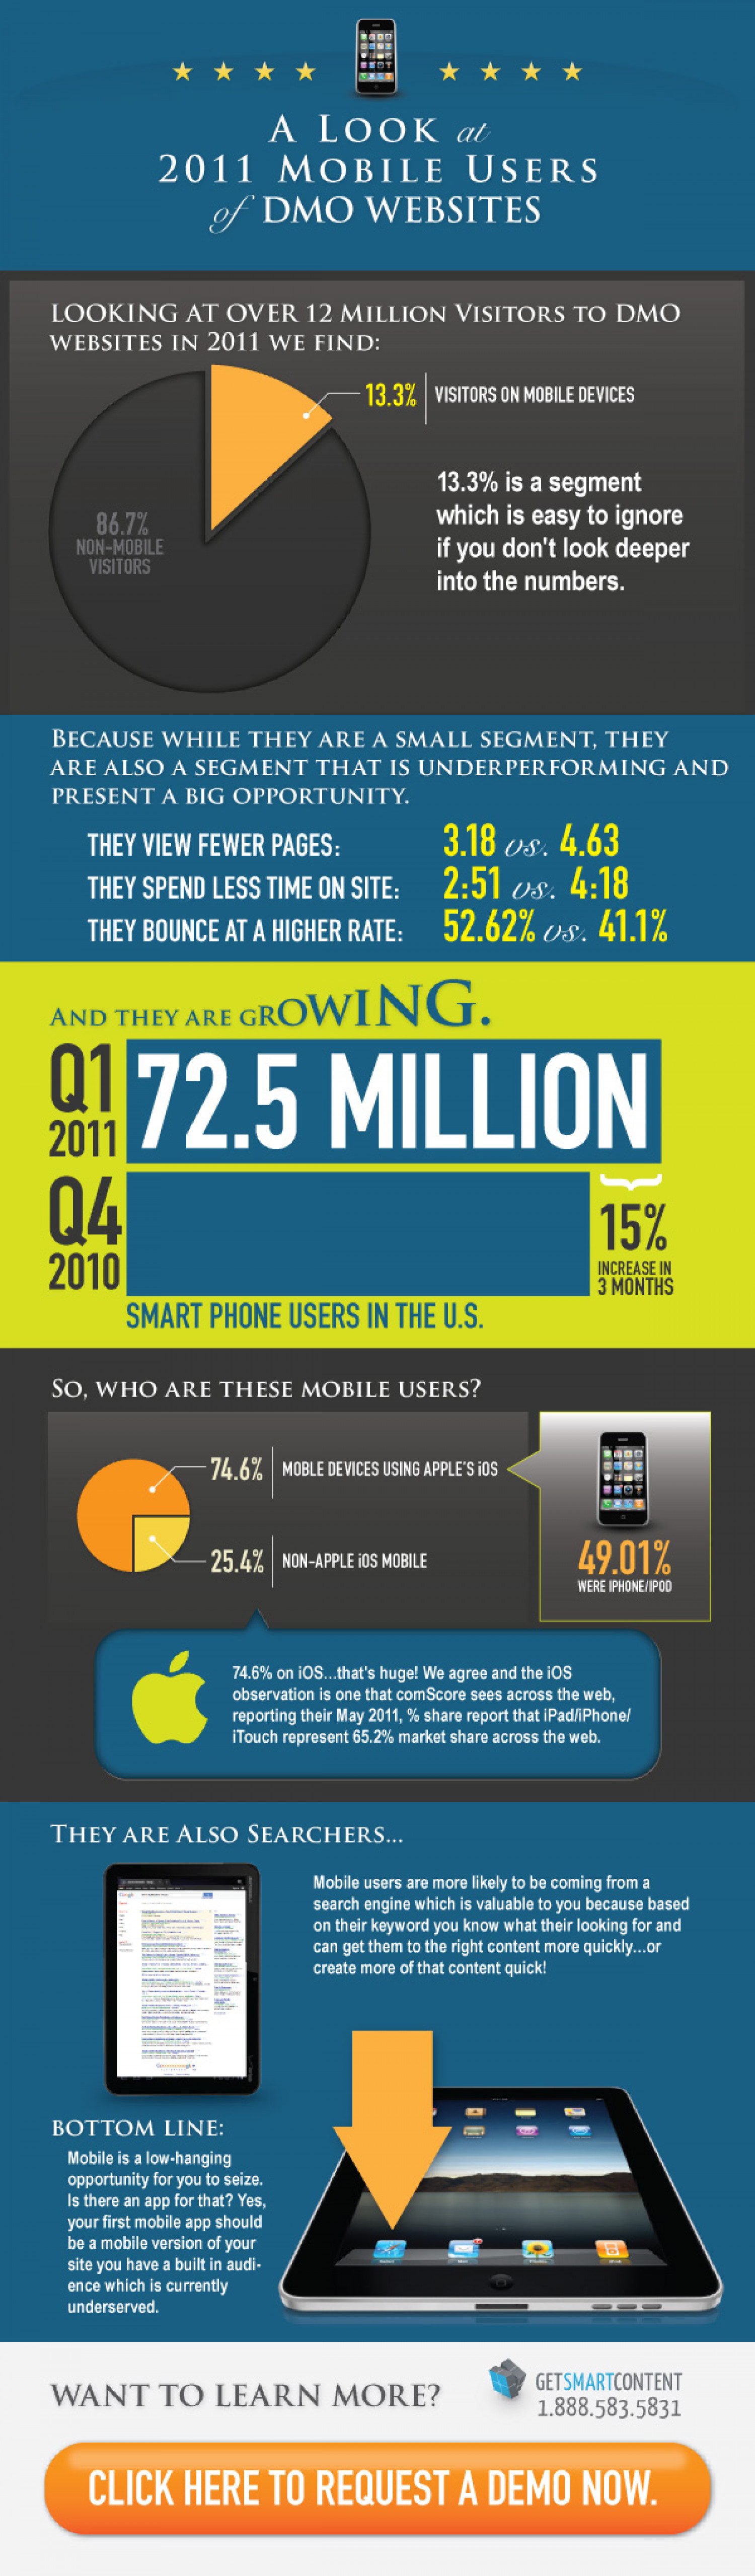 A Look at 2011 Mobile Users of DMO Websites Infographic